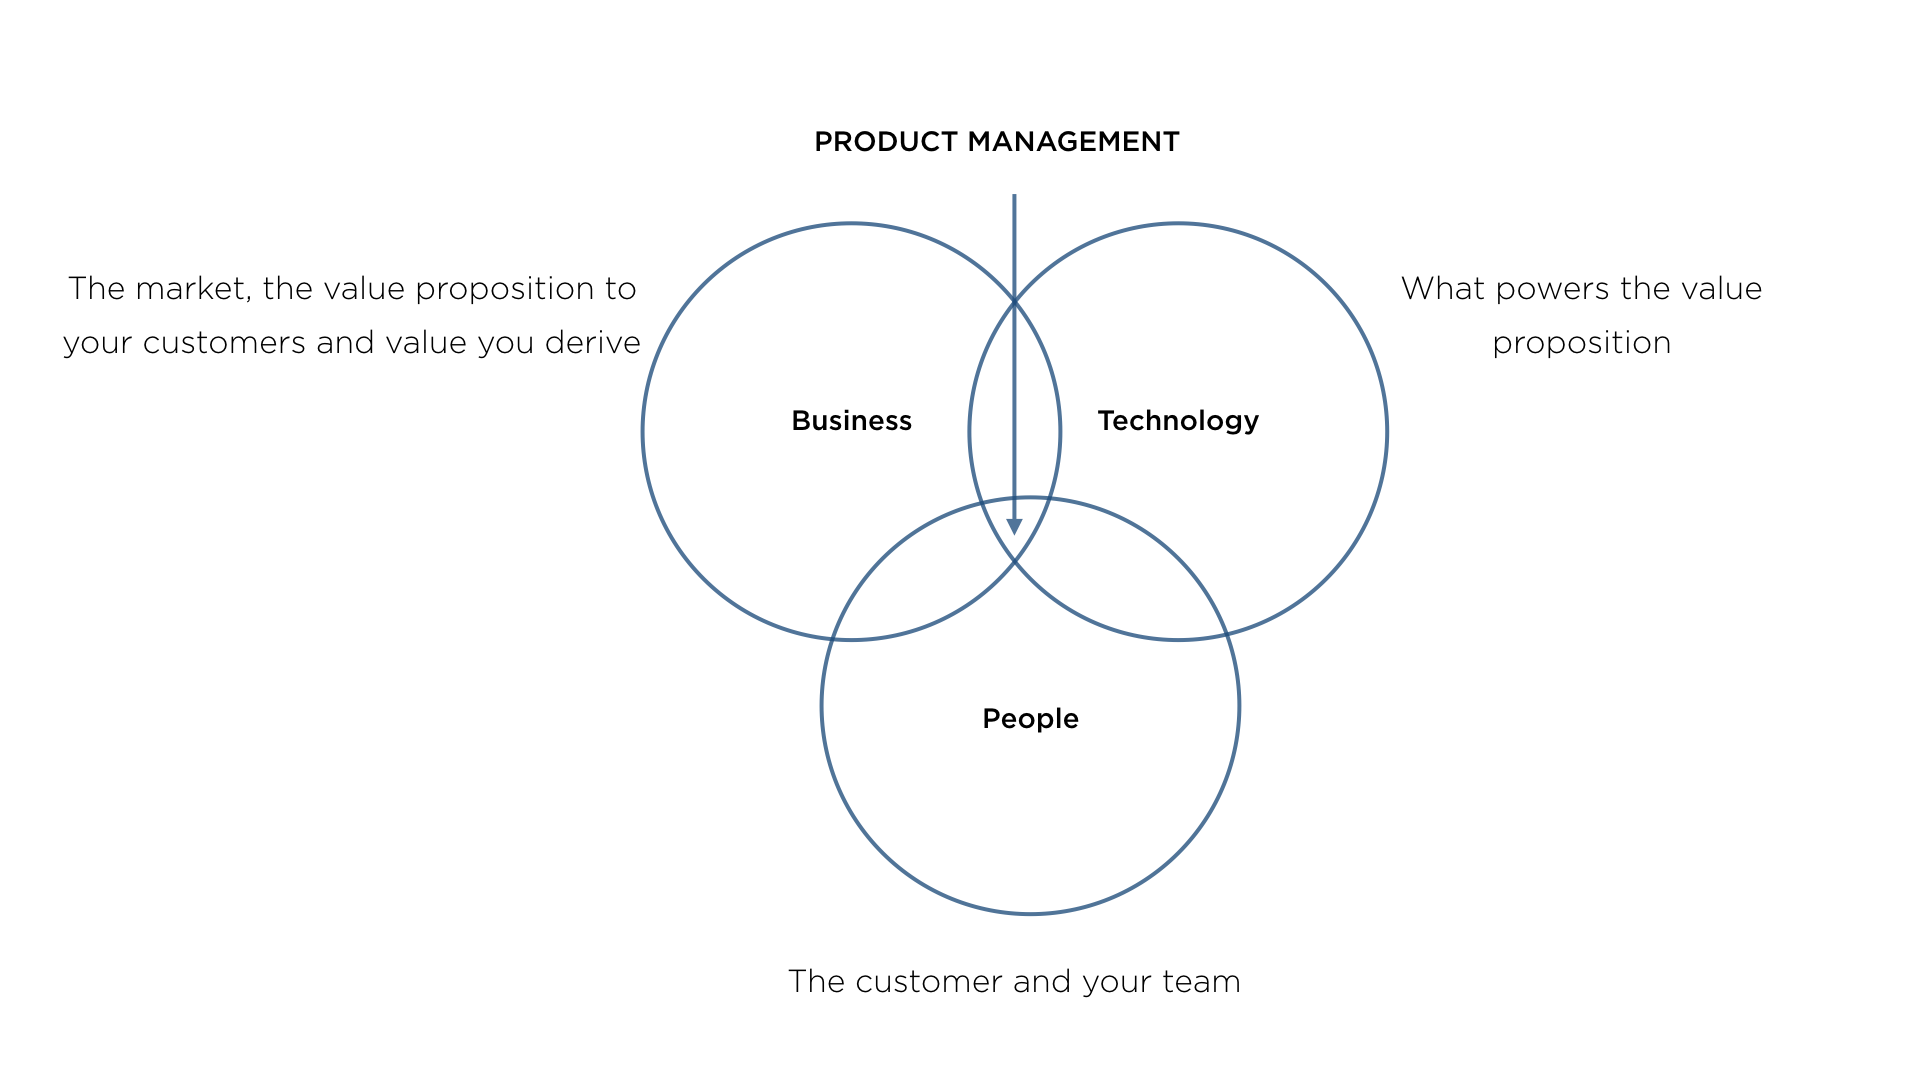 The product management cycle